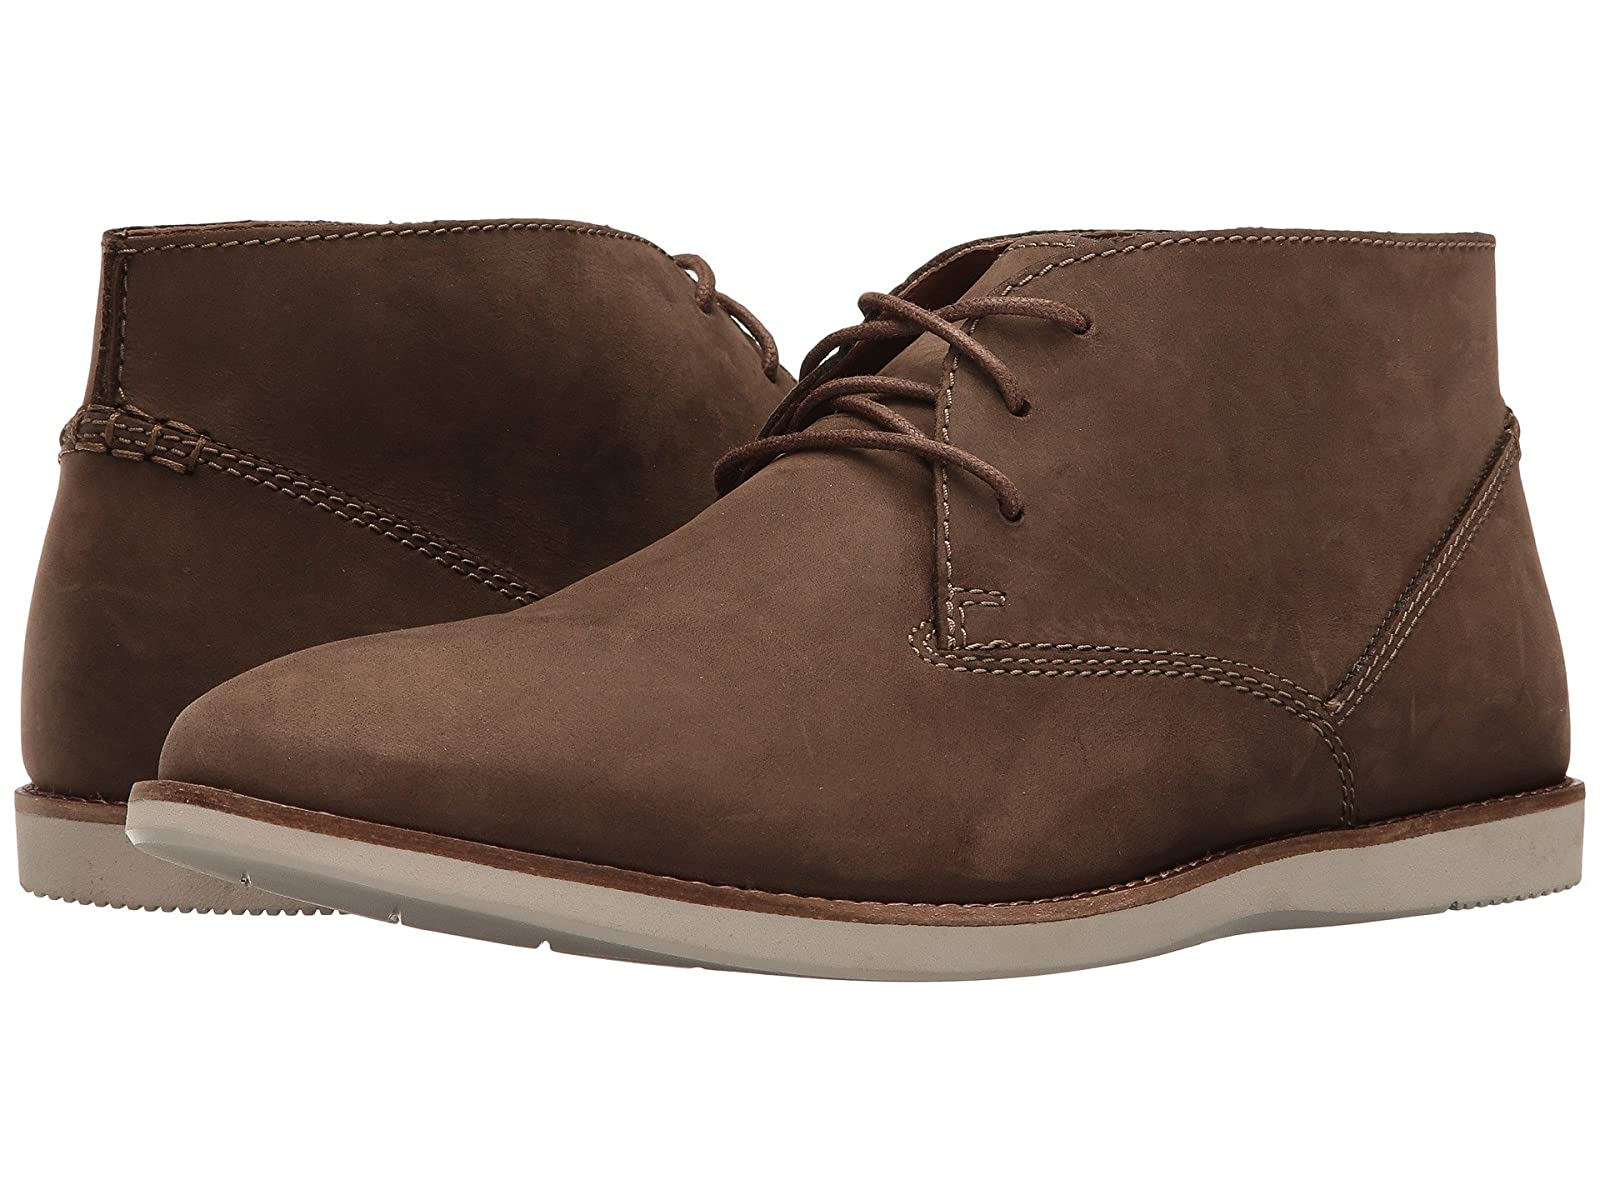 Clarks Franson TopCheap and distinctive eye-catching shoes